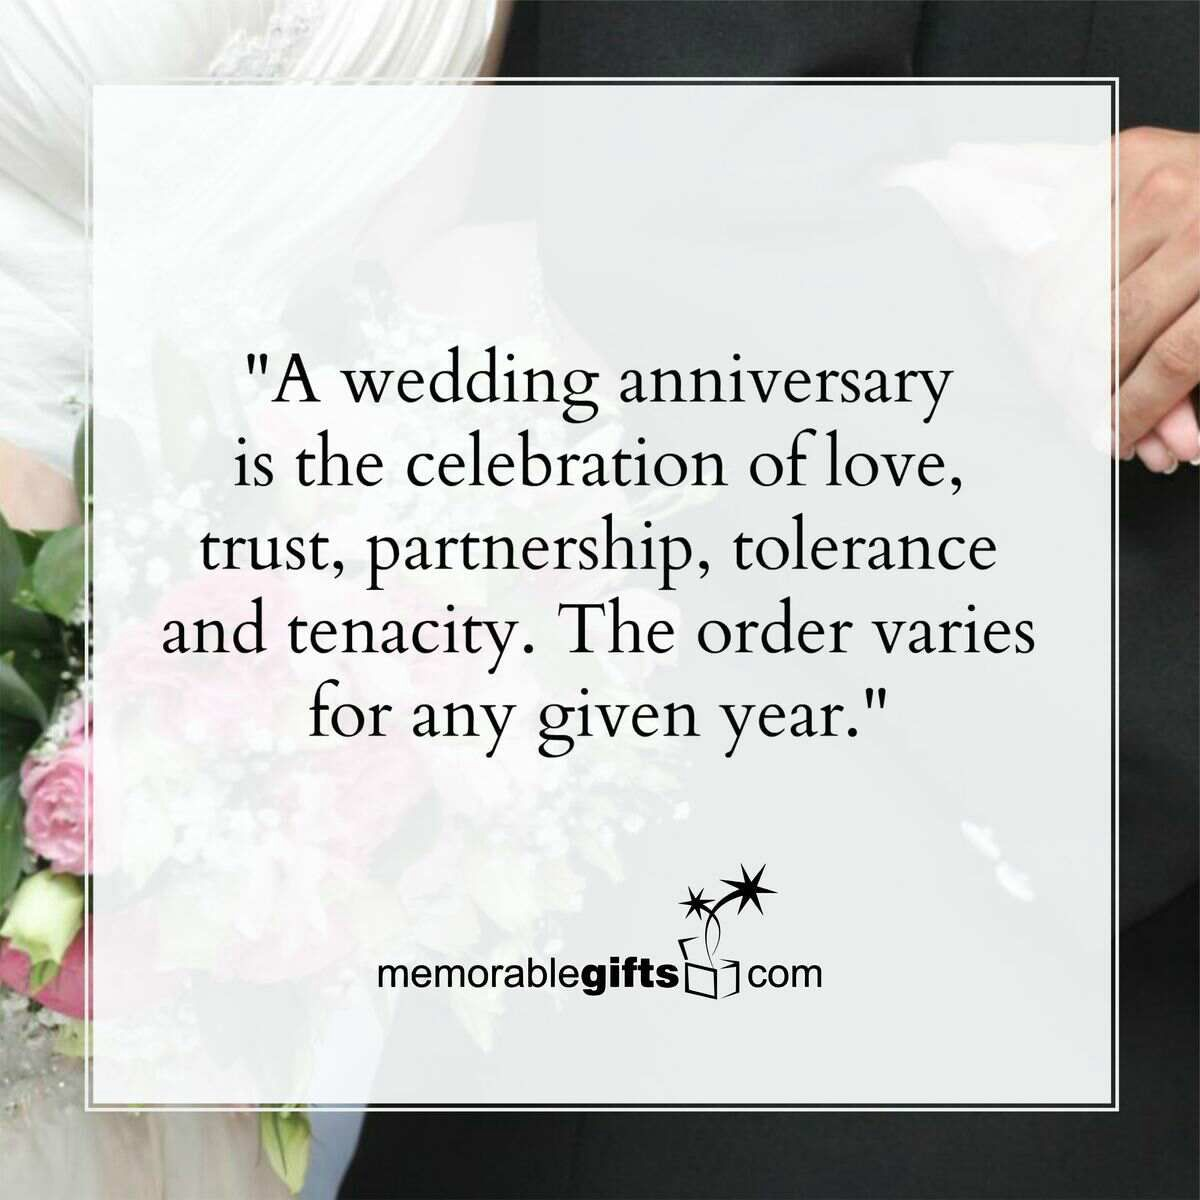 Wedding anniversary quotes quotes inspiration pinterest wedding anniversary quotes golden anniversary30th anniversaryanniversary greetingsfirst kristyandbryce Images